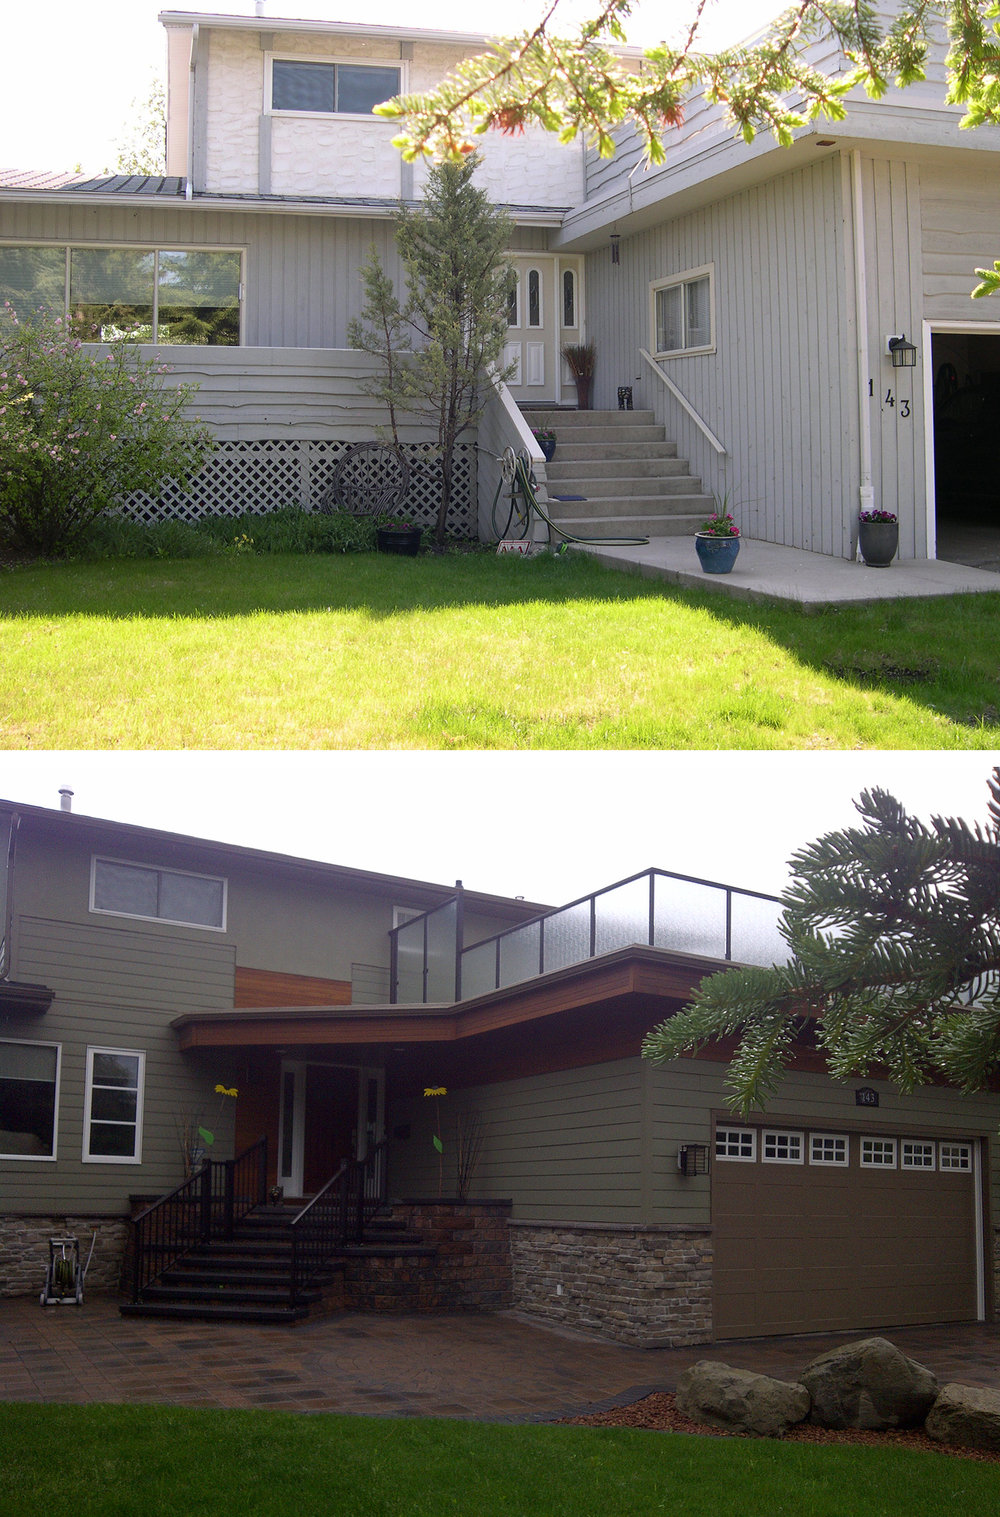 Before & After of an Exterior Renovation in the Calgary community of Varsity Acres